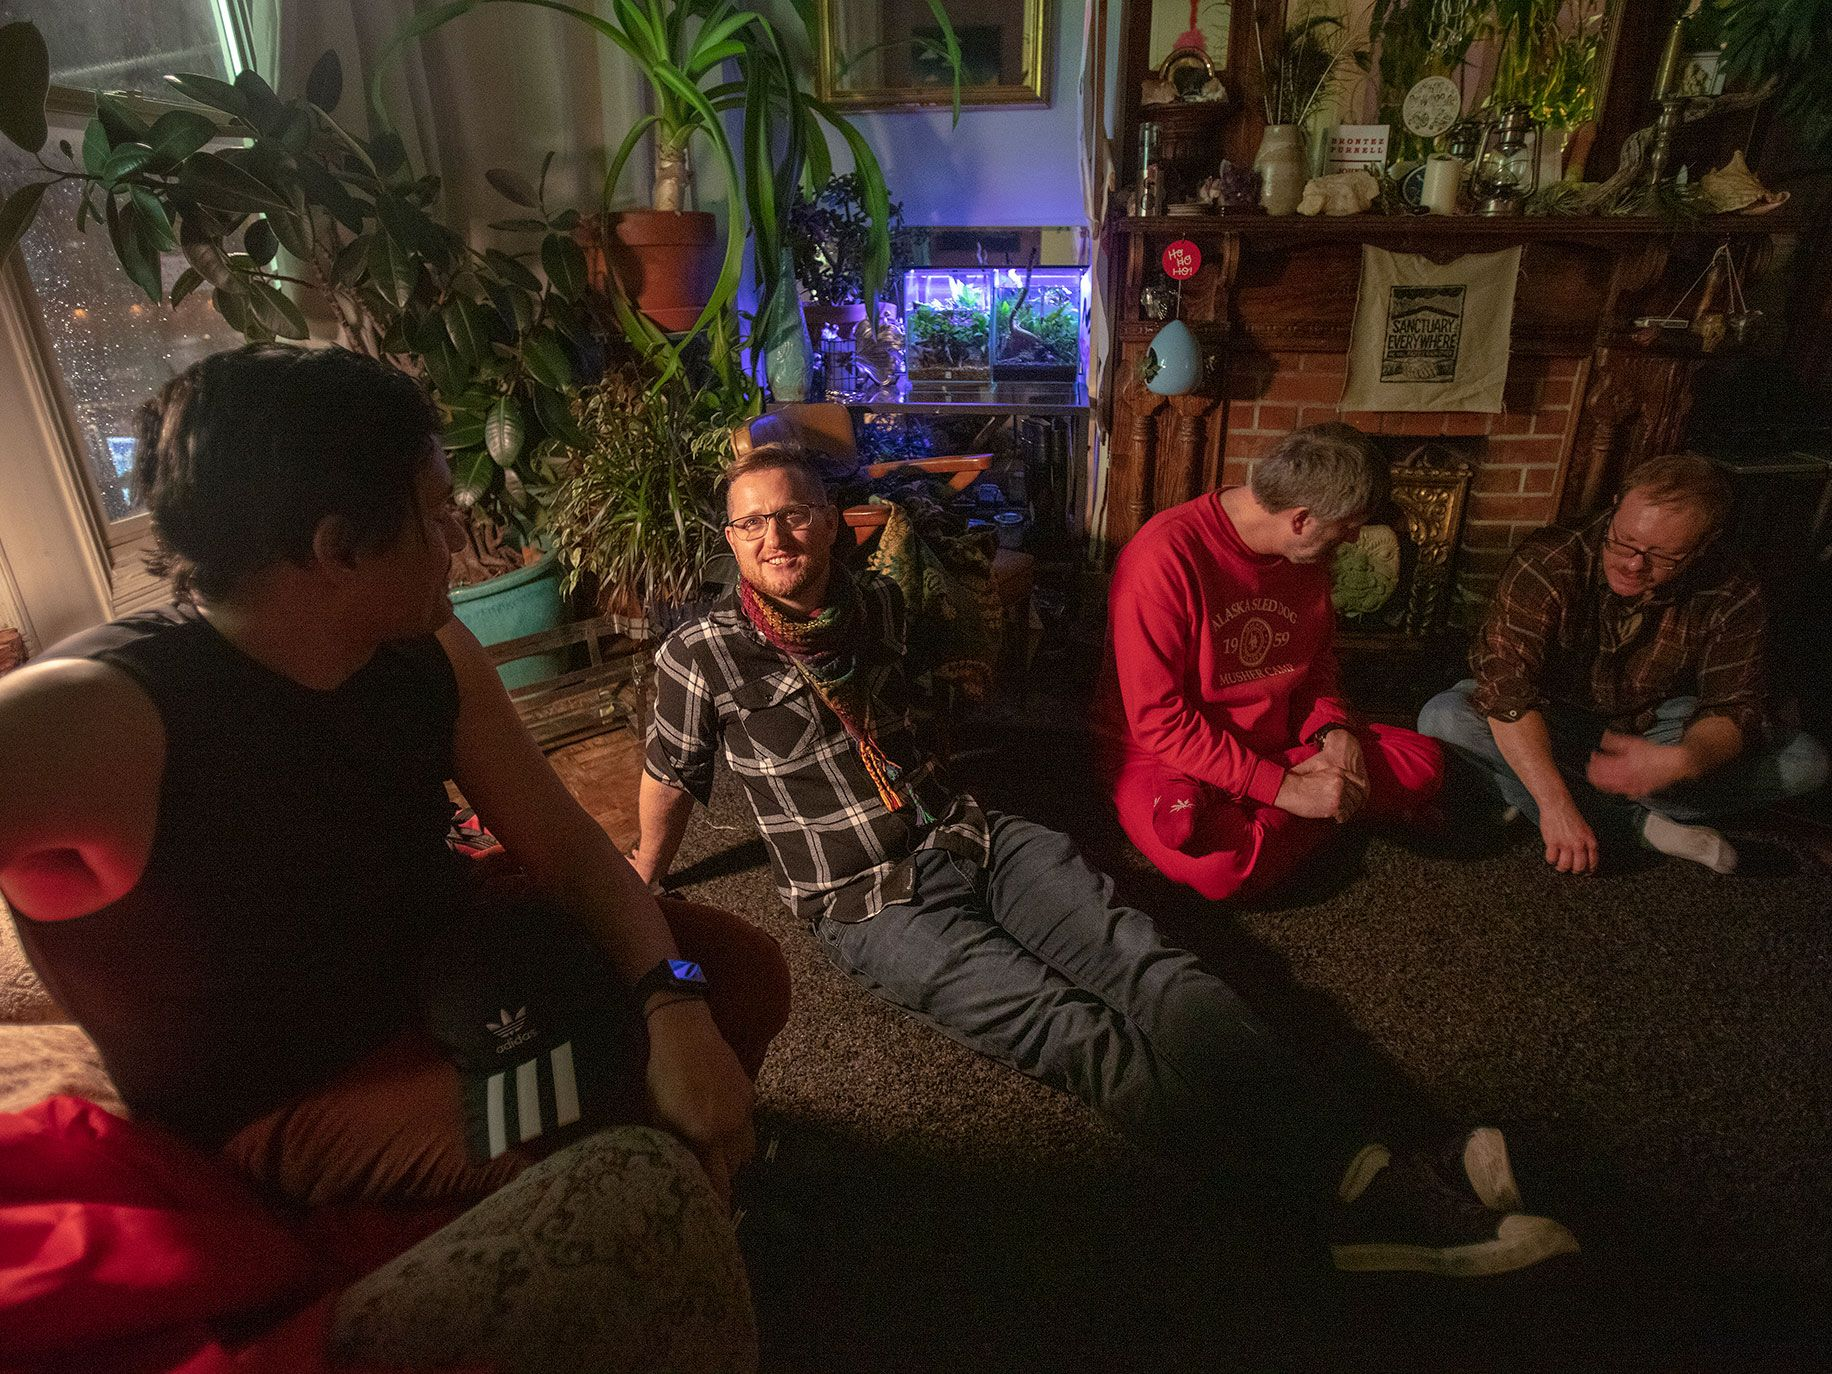 Radical Faeries activists Jesse Oliver Sanford (center) during a Radical Faeries potluck dinner held at his communal apartment in San Francisco's Castro District. The neighborhood, once a haven for the LGBTQ+ community, has become popular with heterosexual families.